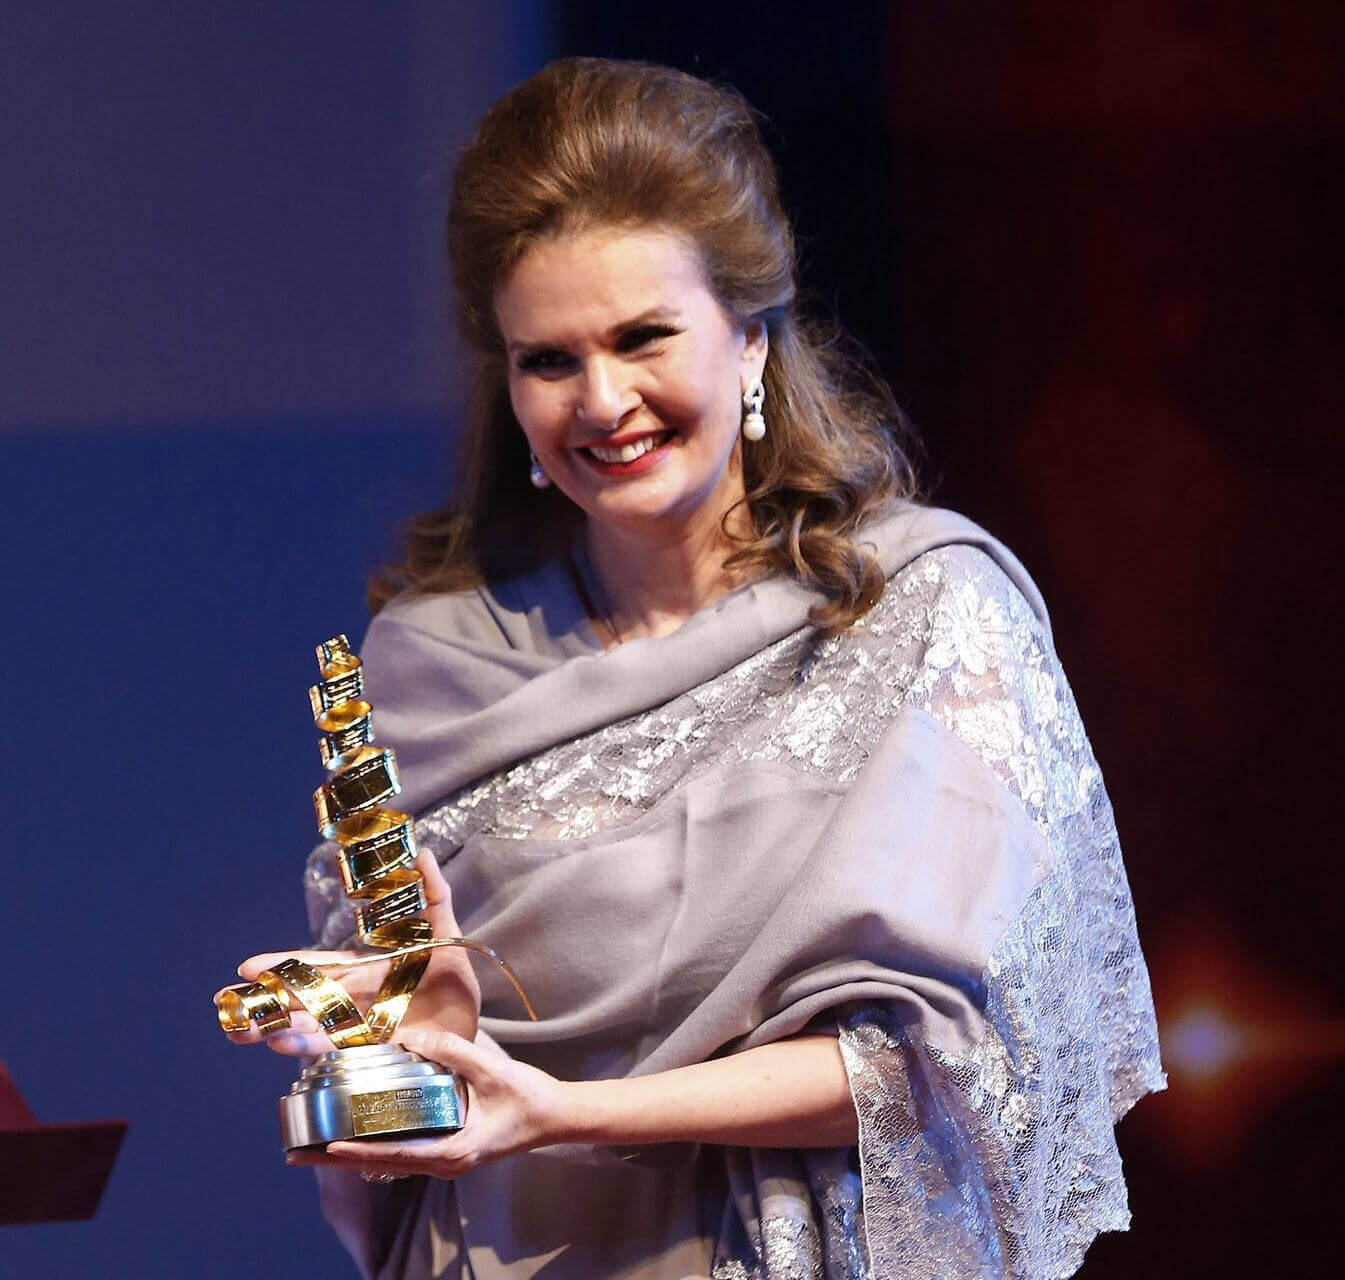 Yousra attends the opening ceremony of the 8th Muscat International Film Festival